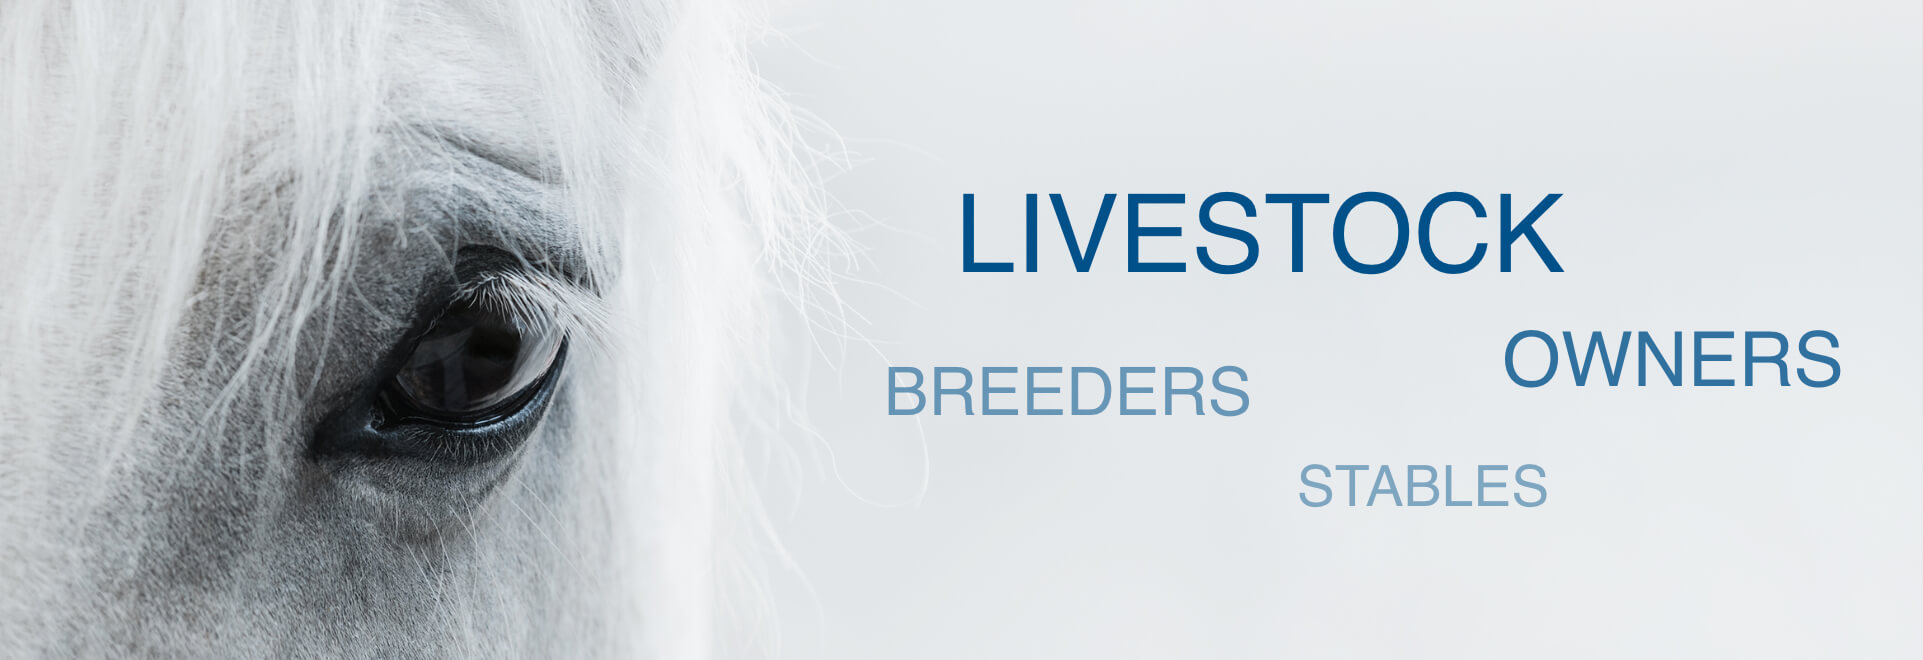 Livestock - Owners -Breeders